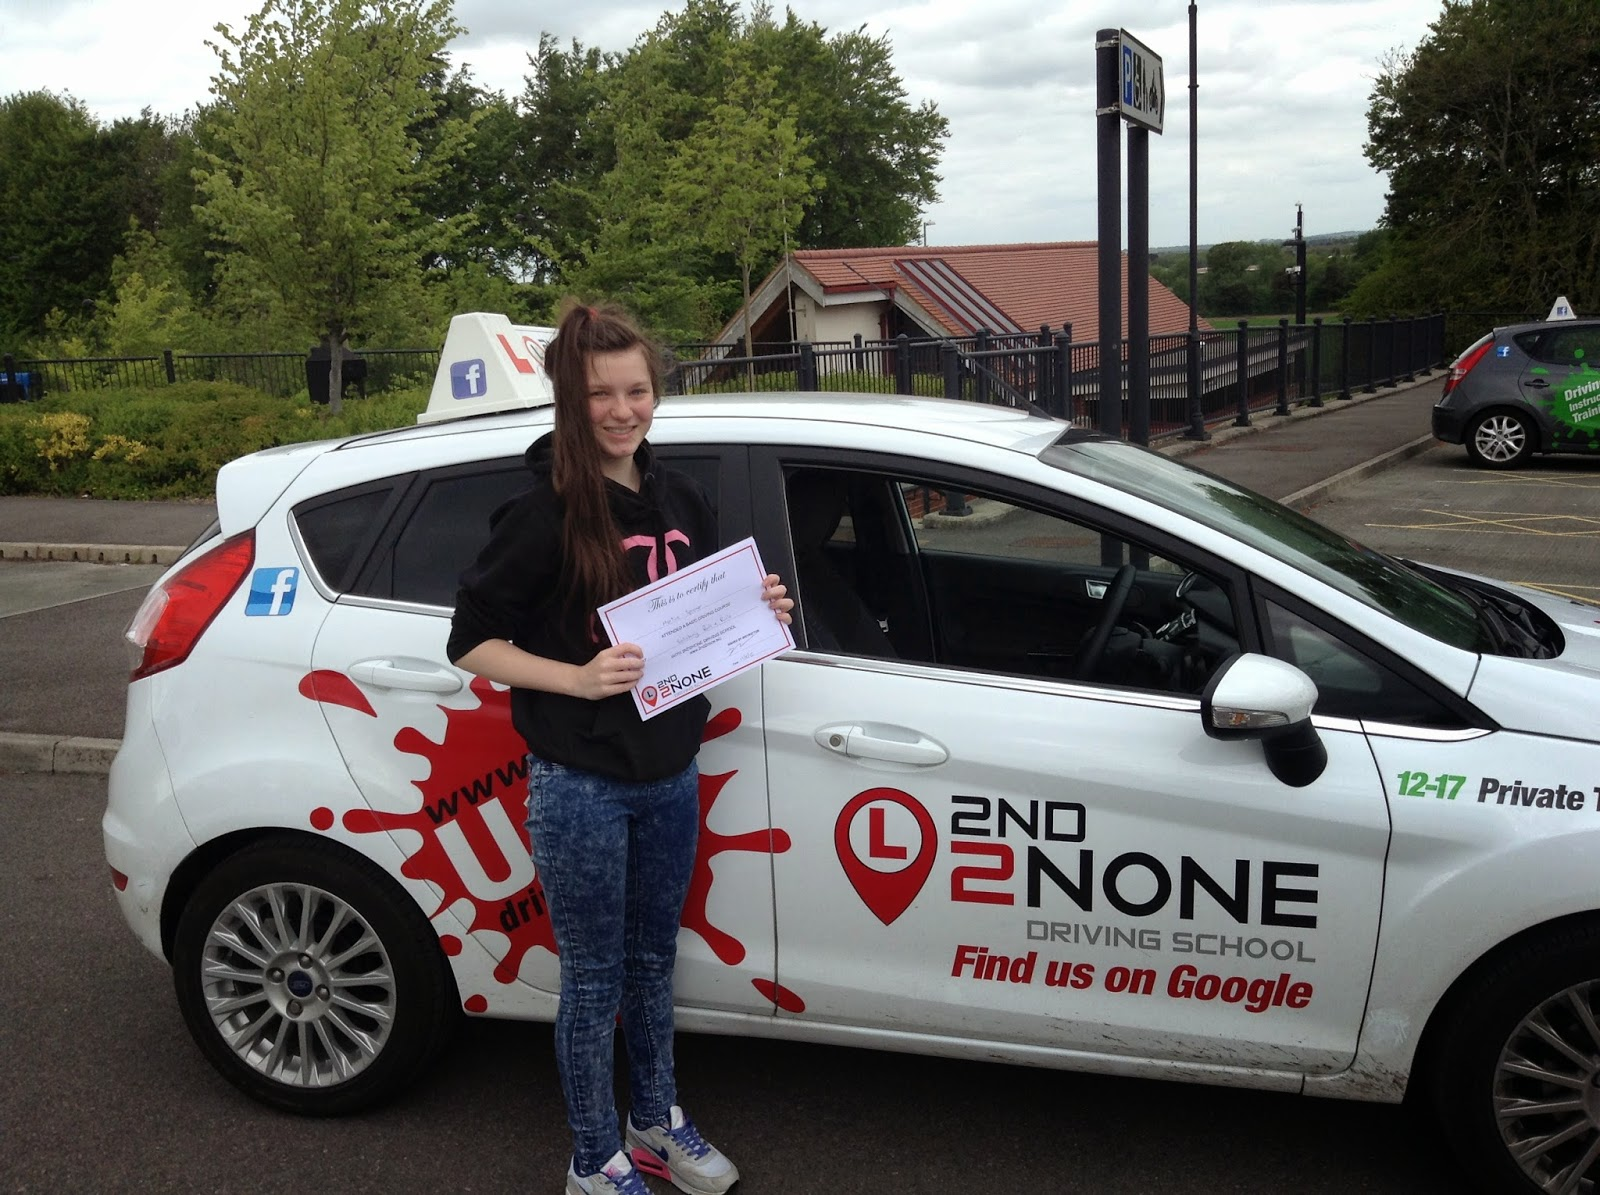 Under 17s Driving Lessons Salisbury